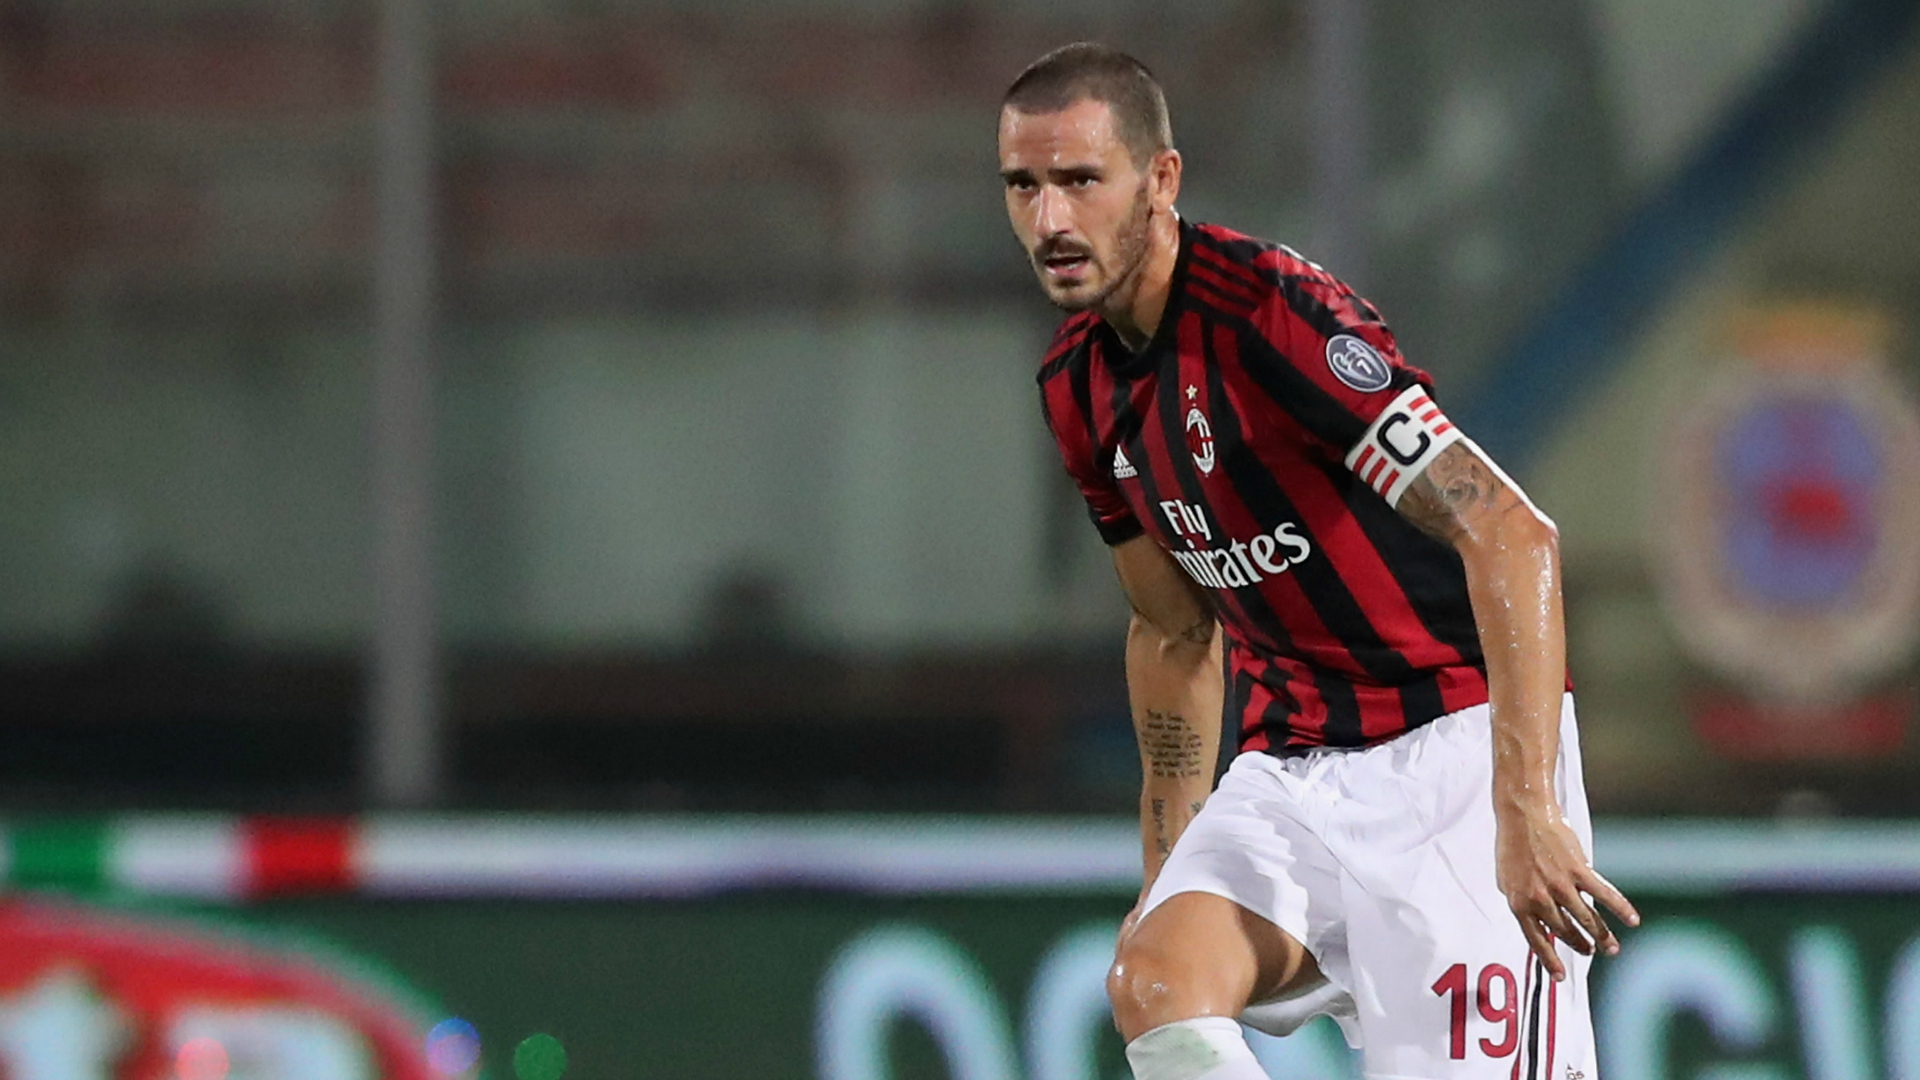 Leonardo Bonucci Milan Betis Club Friendlies 08092017